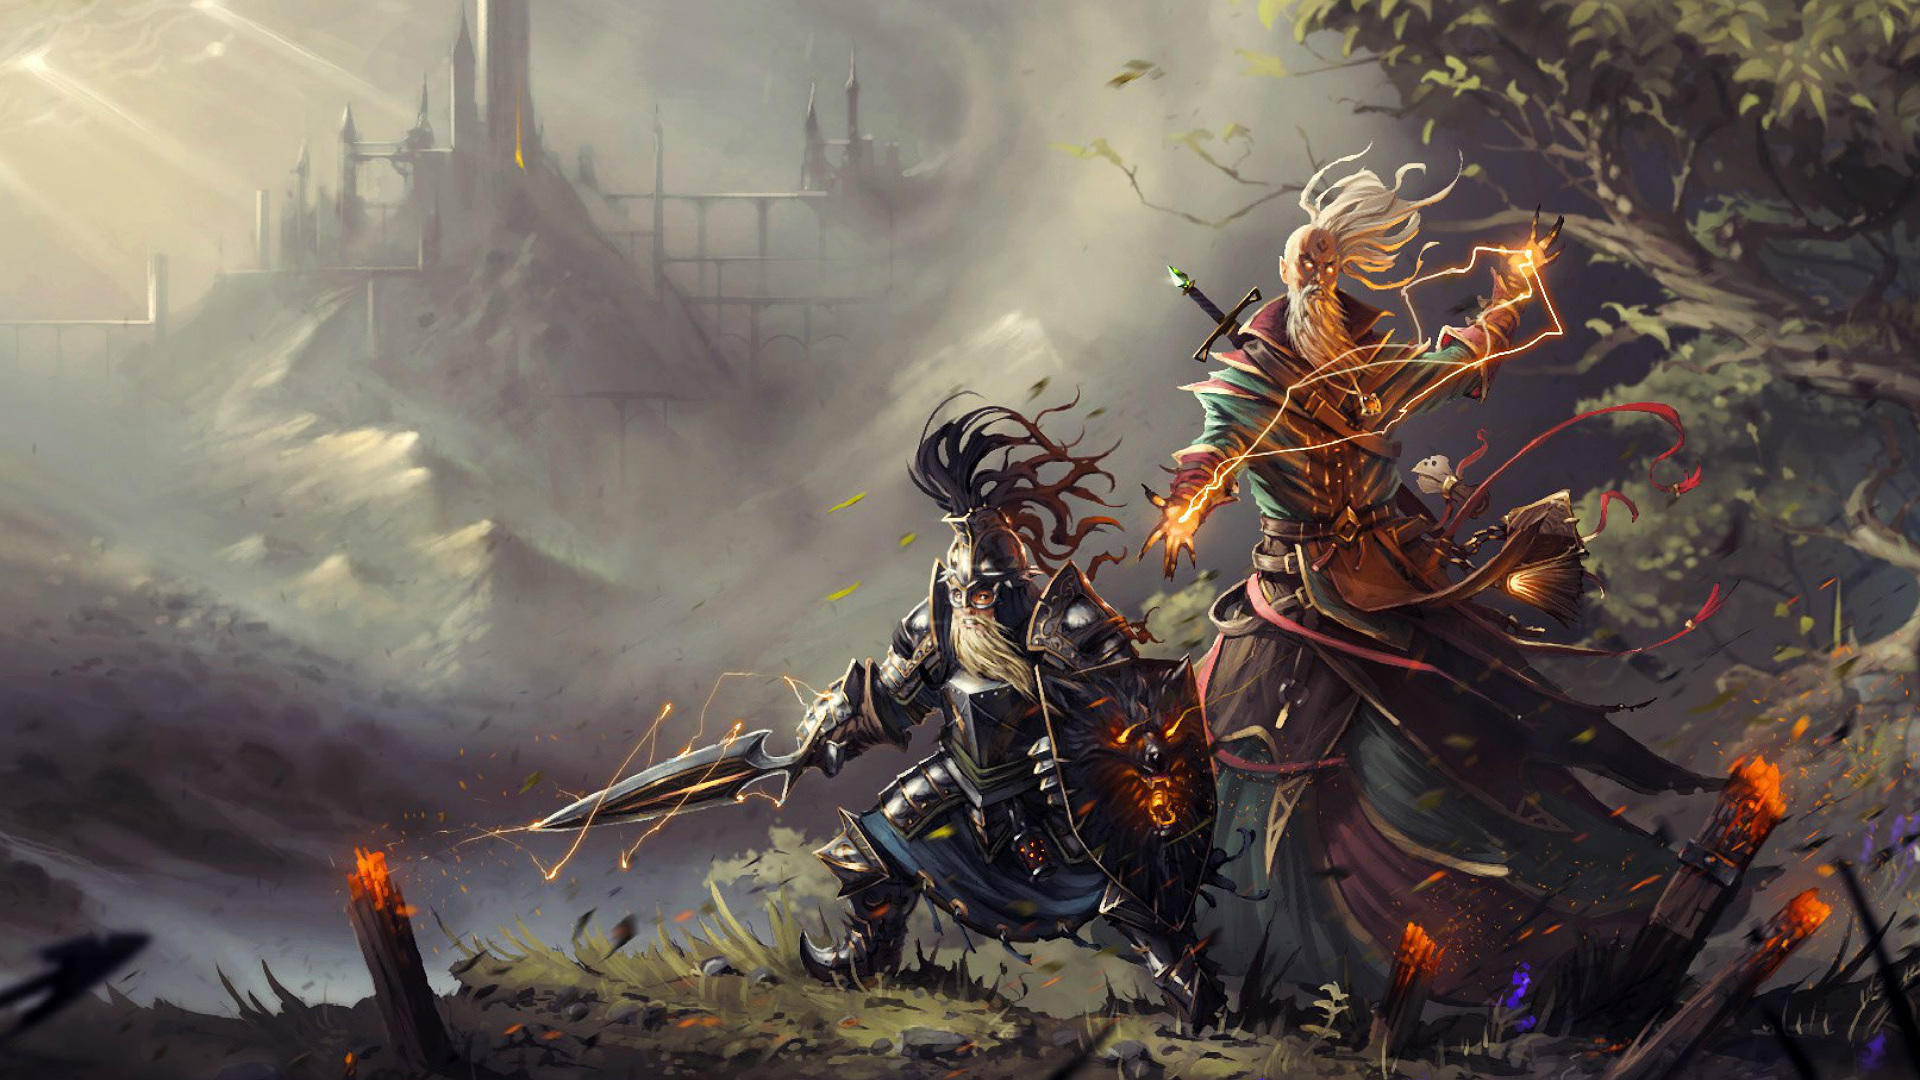 cross save is a major advantage for divinity original sin 2 on switch